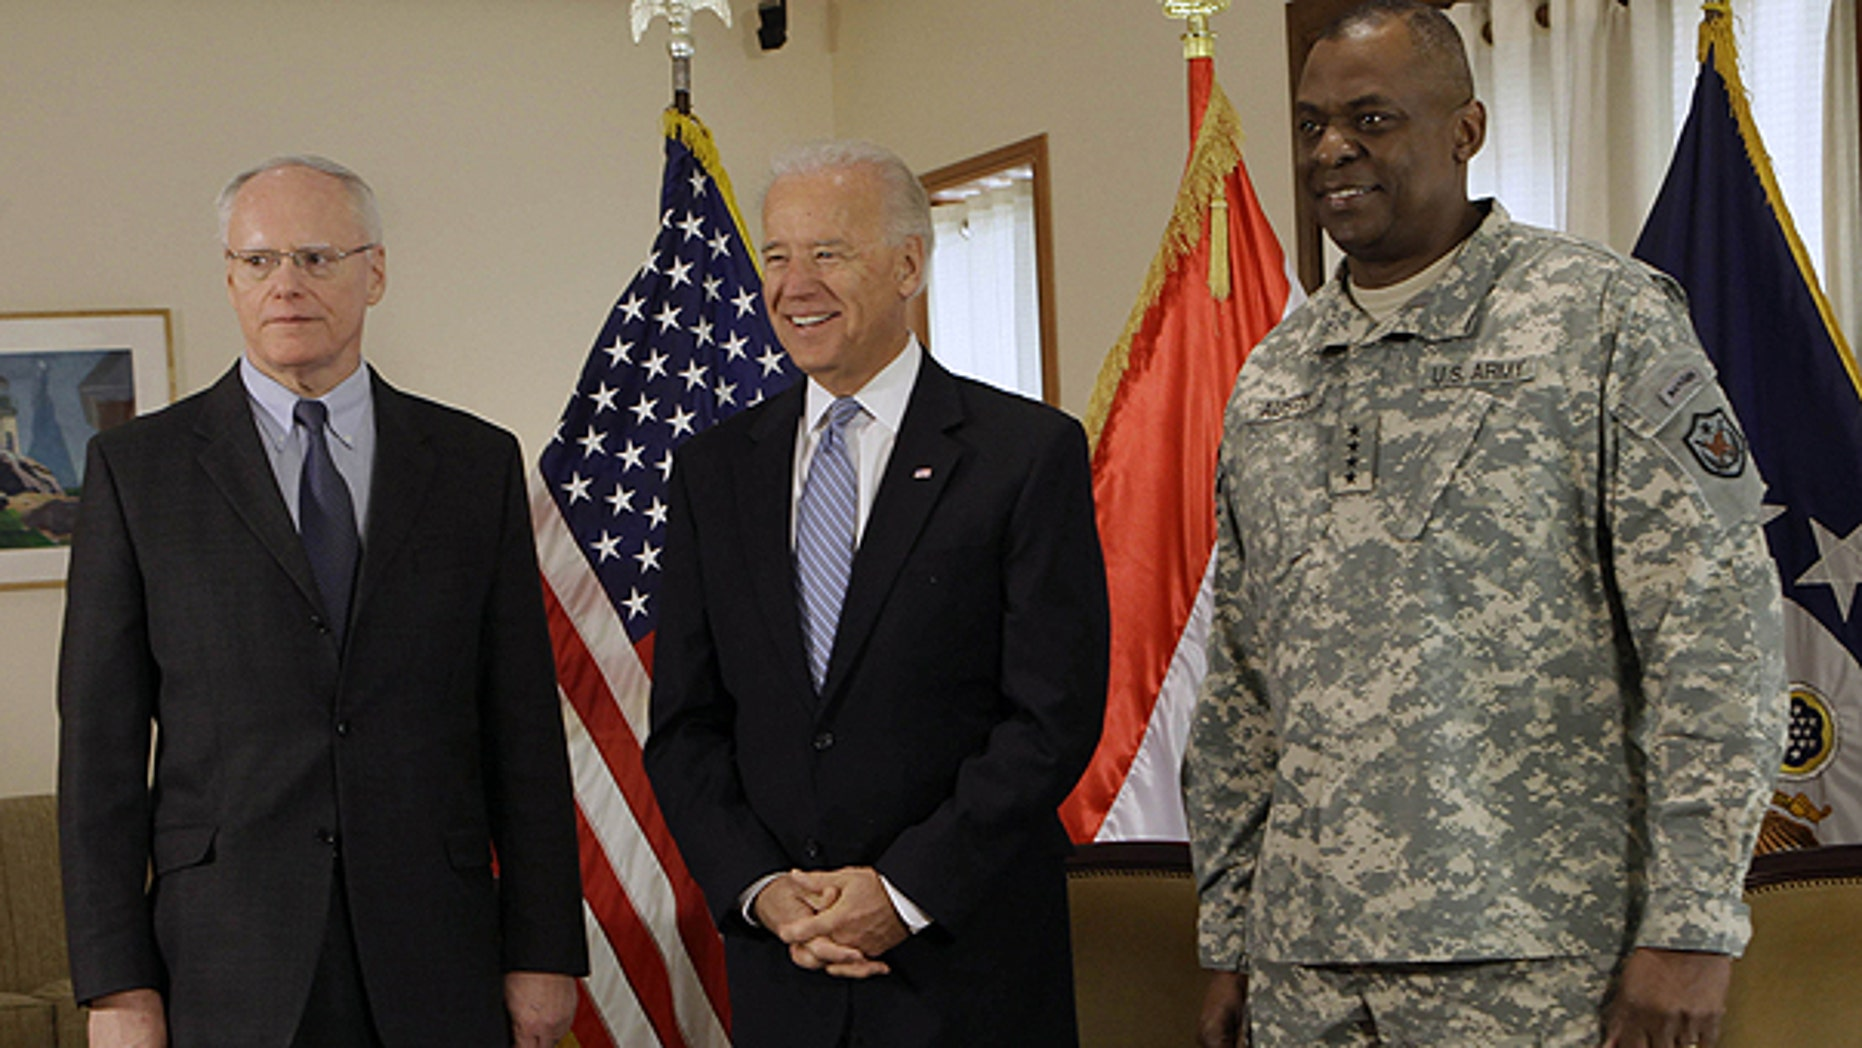 Jan. 13: U.S. Vice President Joe Biden, center, is seen with Ambassador to Iraq James F. Jeffrey, left, and Gen. Lloyd Austin, the top U.S. commander in Iraq, in Baghdad, Iraq.